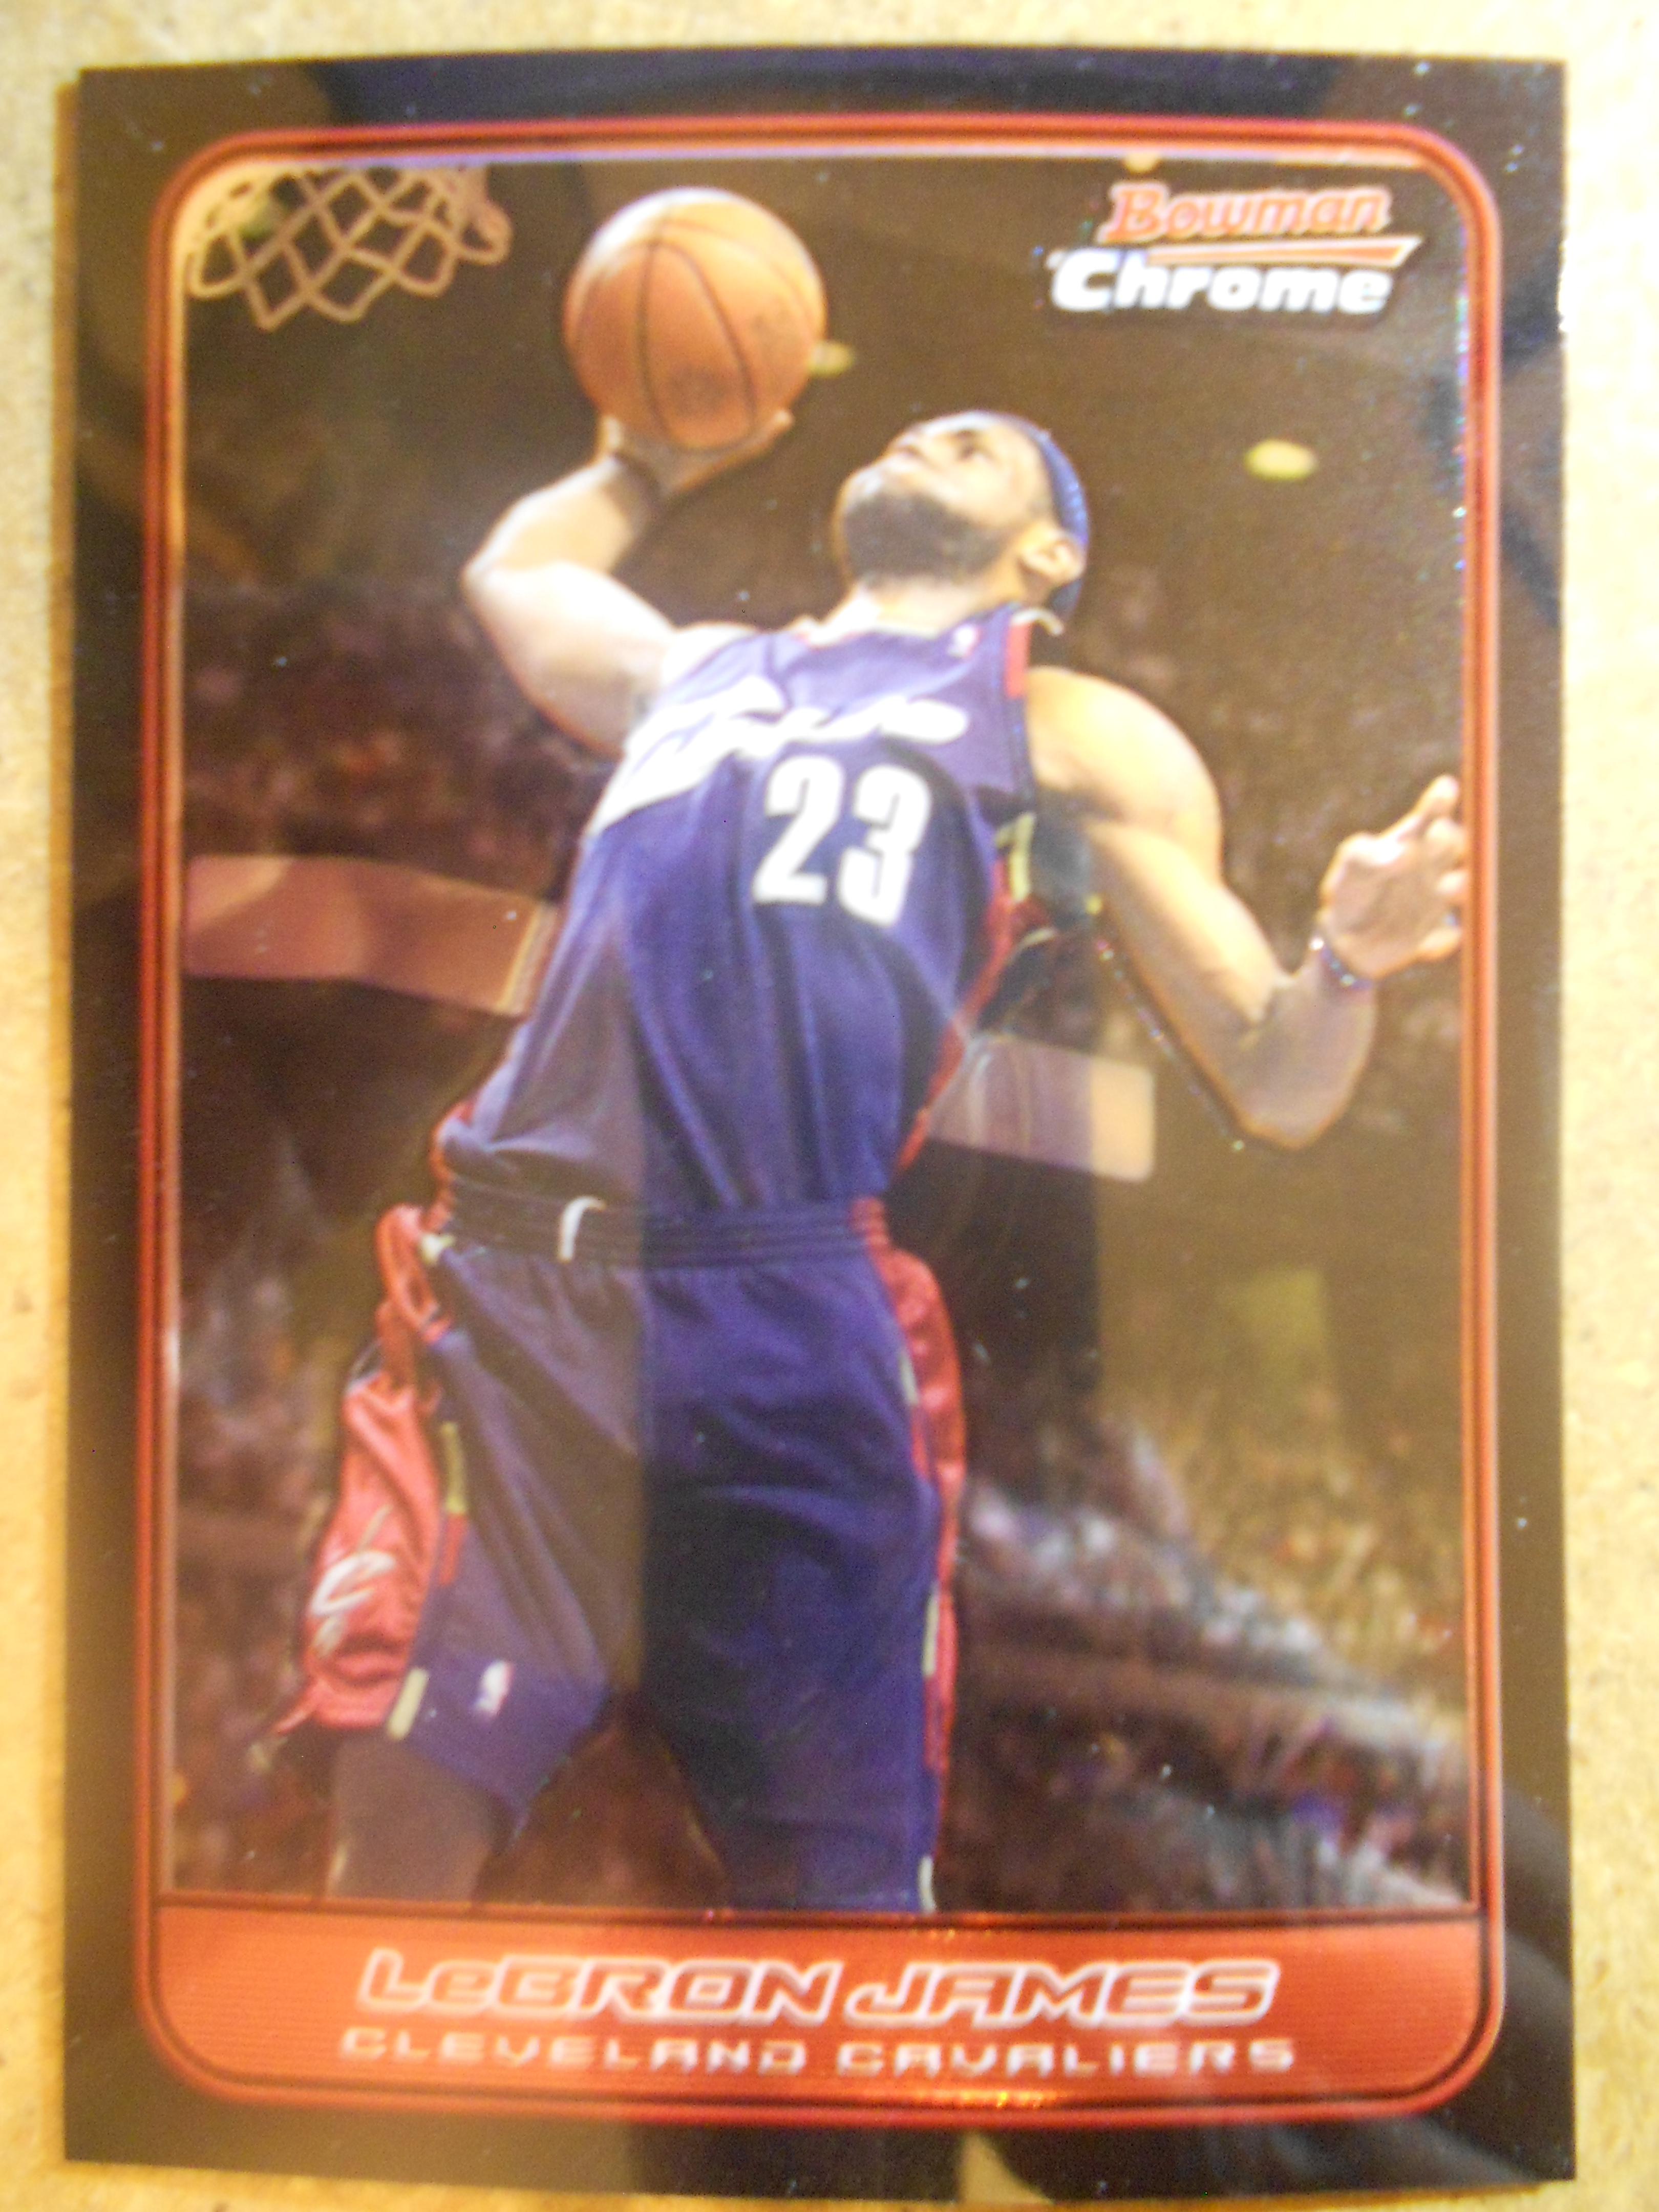 2006-07 Bowman Chrome #22 LeBron James